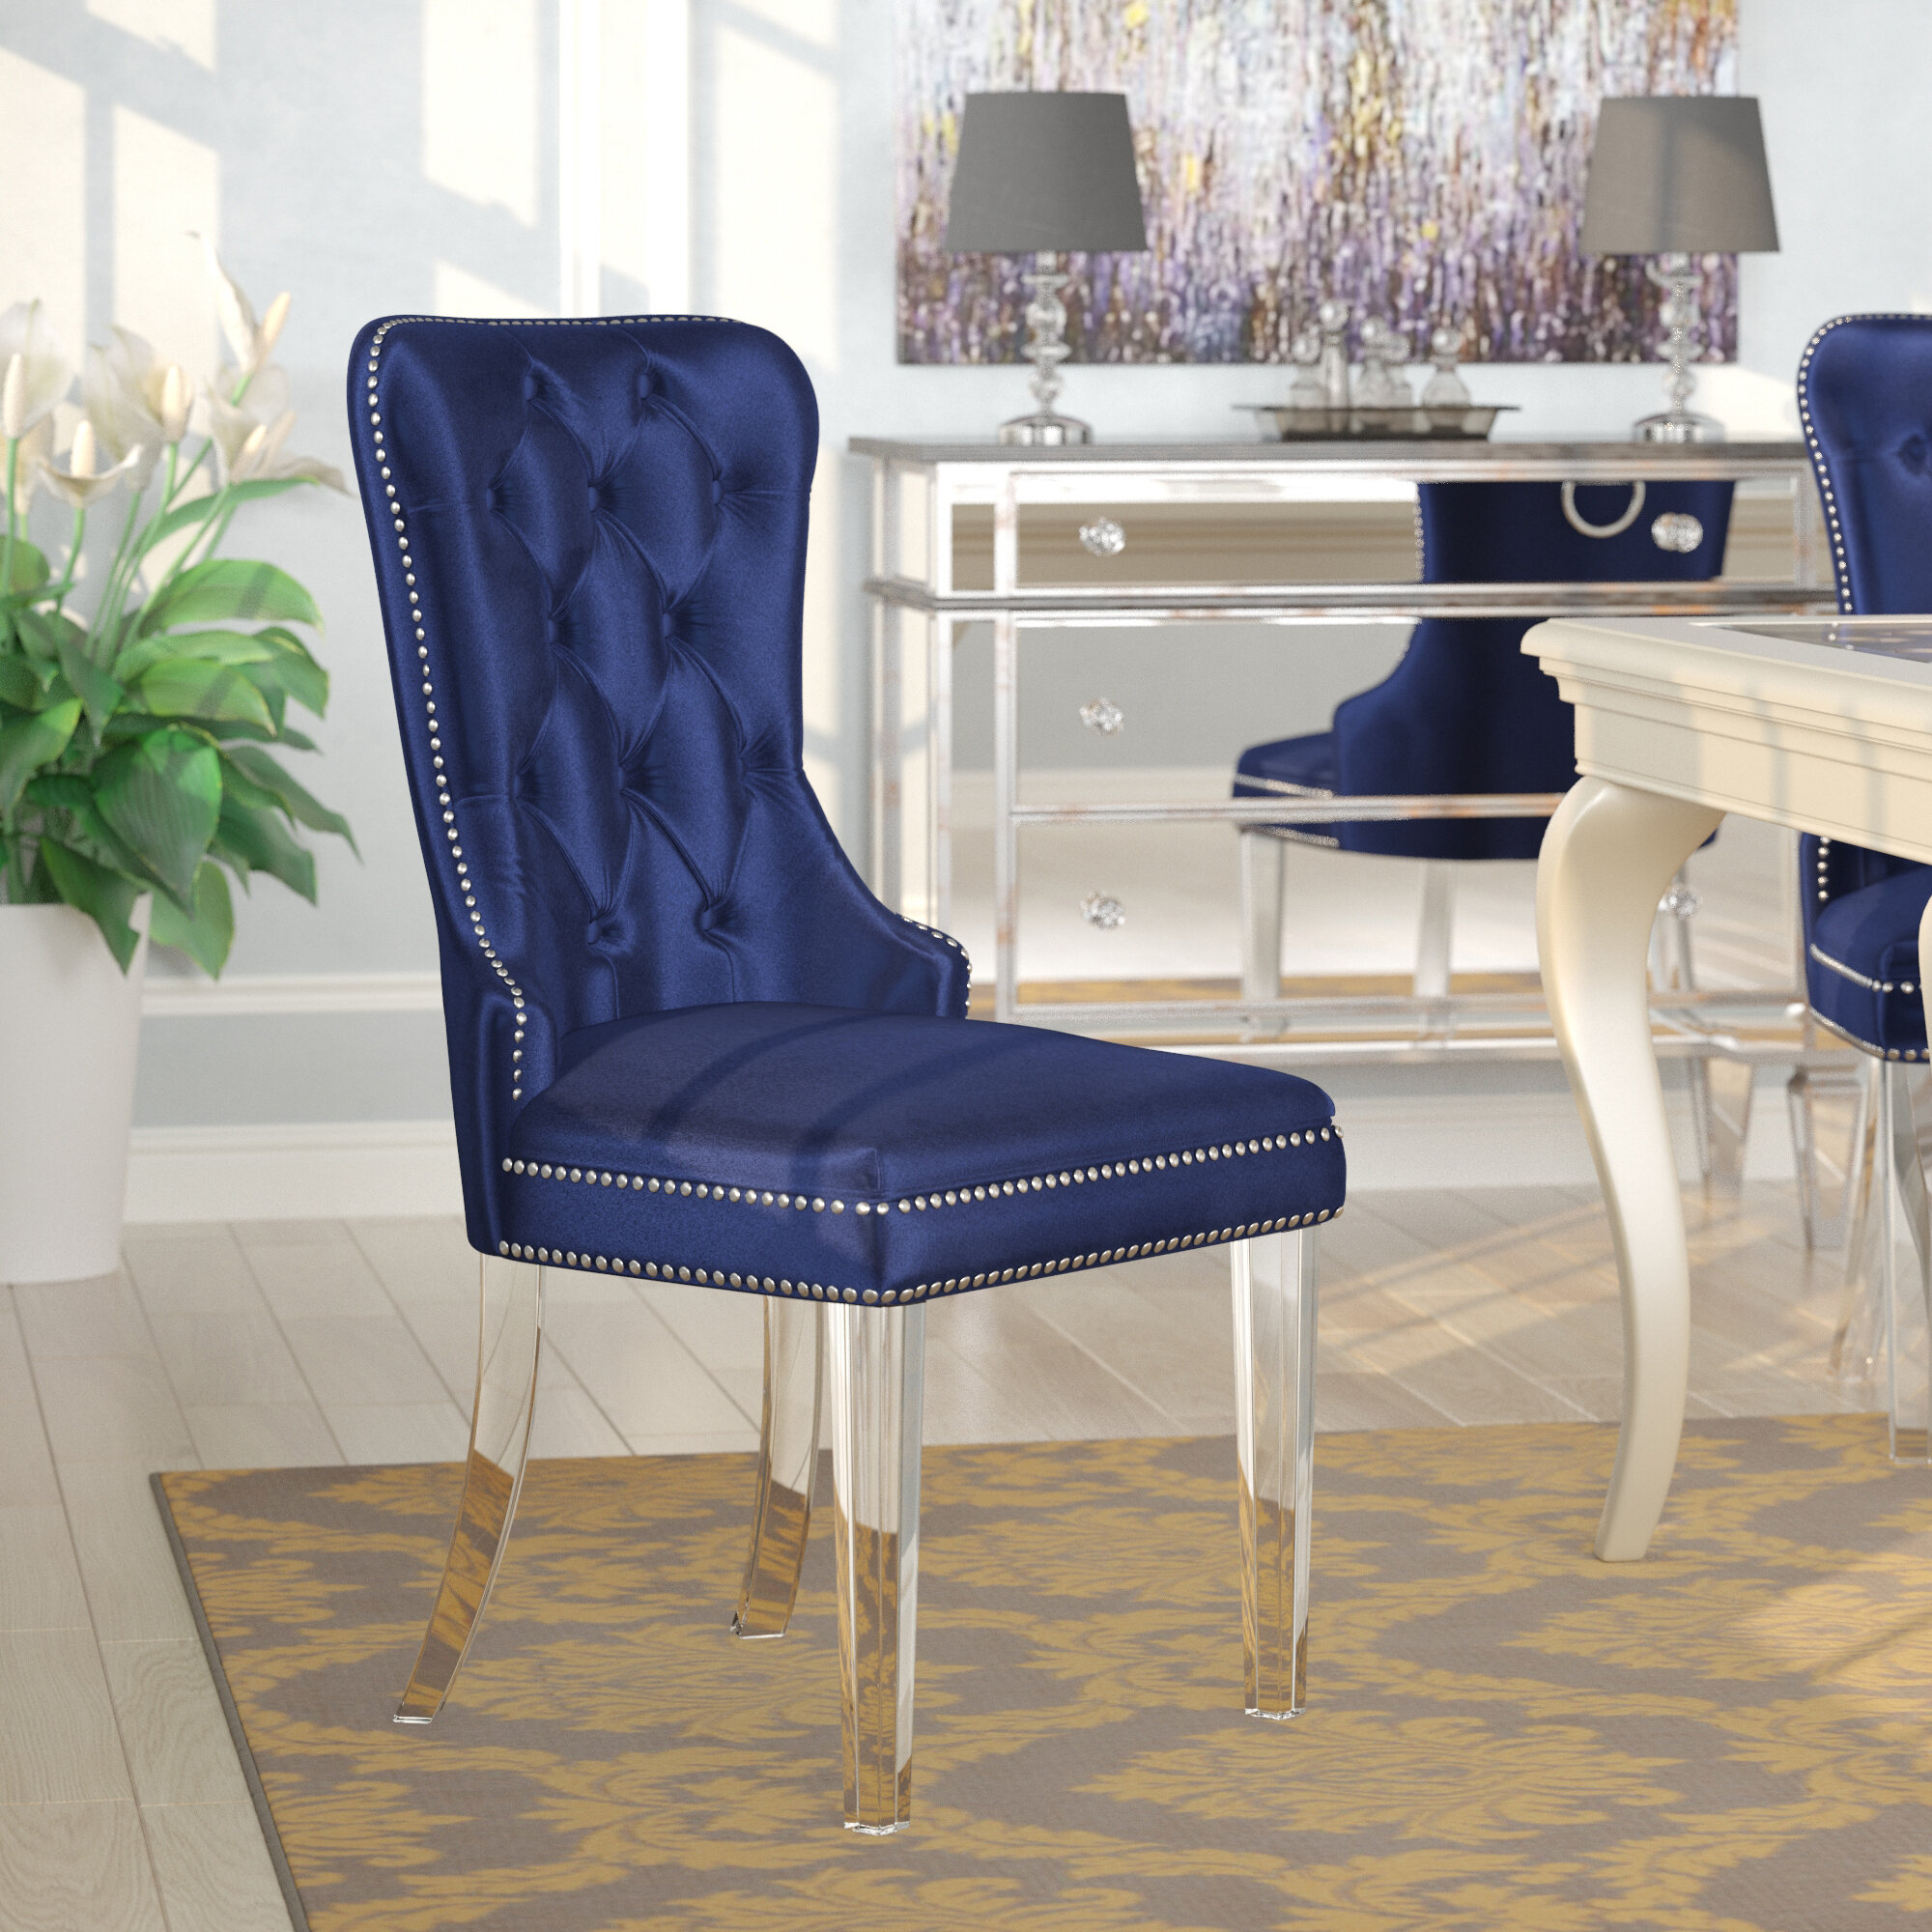 Picture of: Willa Arlo Interiors Zaphod Tufted Upholstered Dining Chair Reviews Wayfair